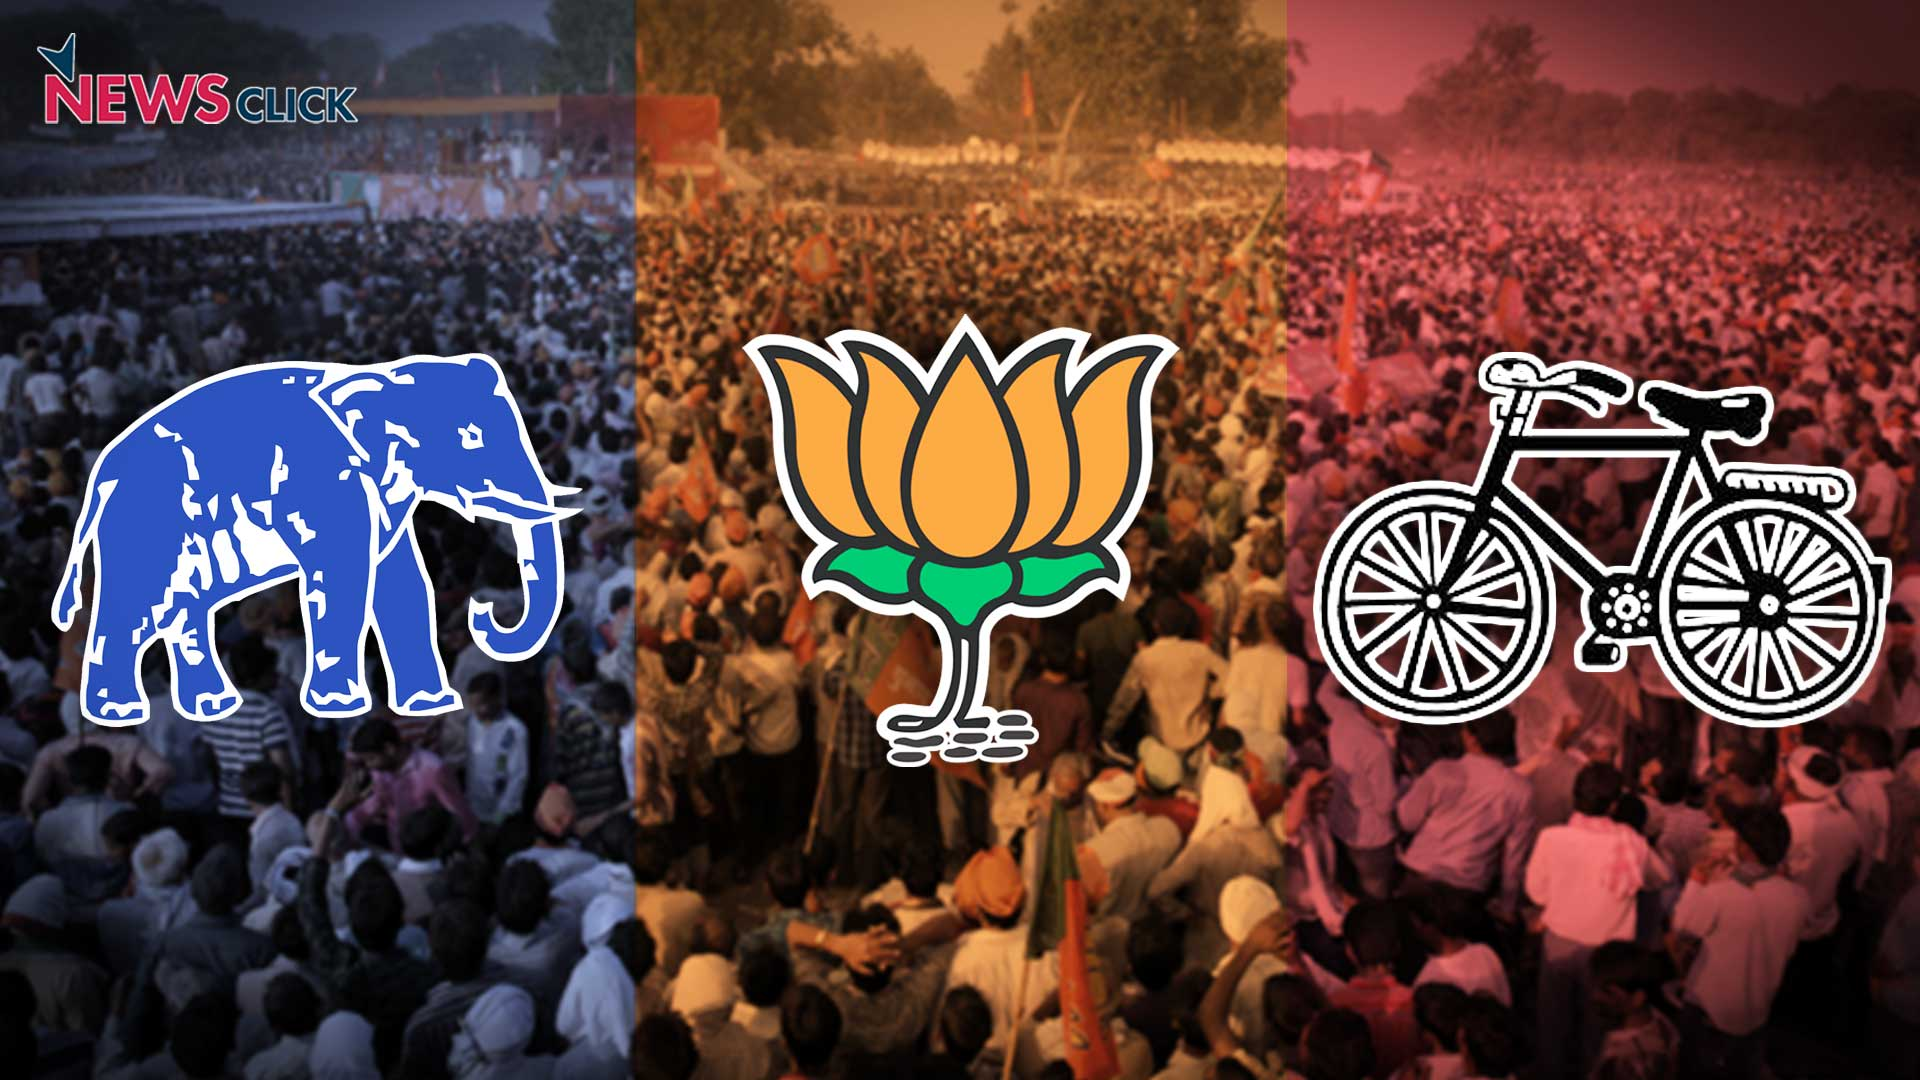 UP civic polls: Why BJP is mum on nagar panchayat results?